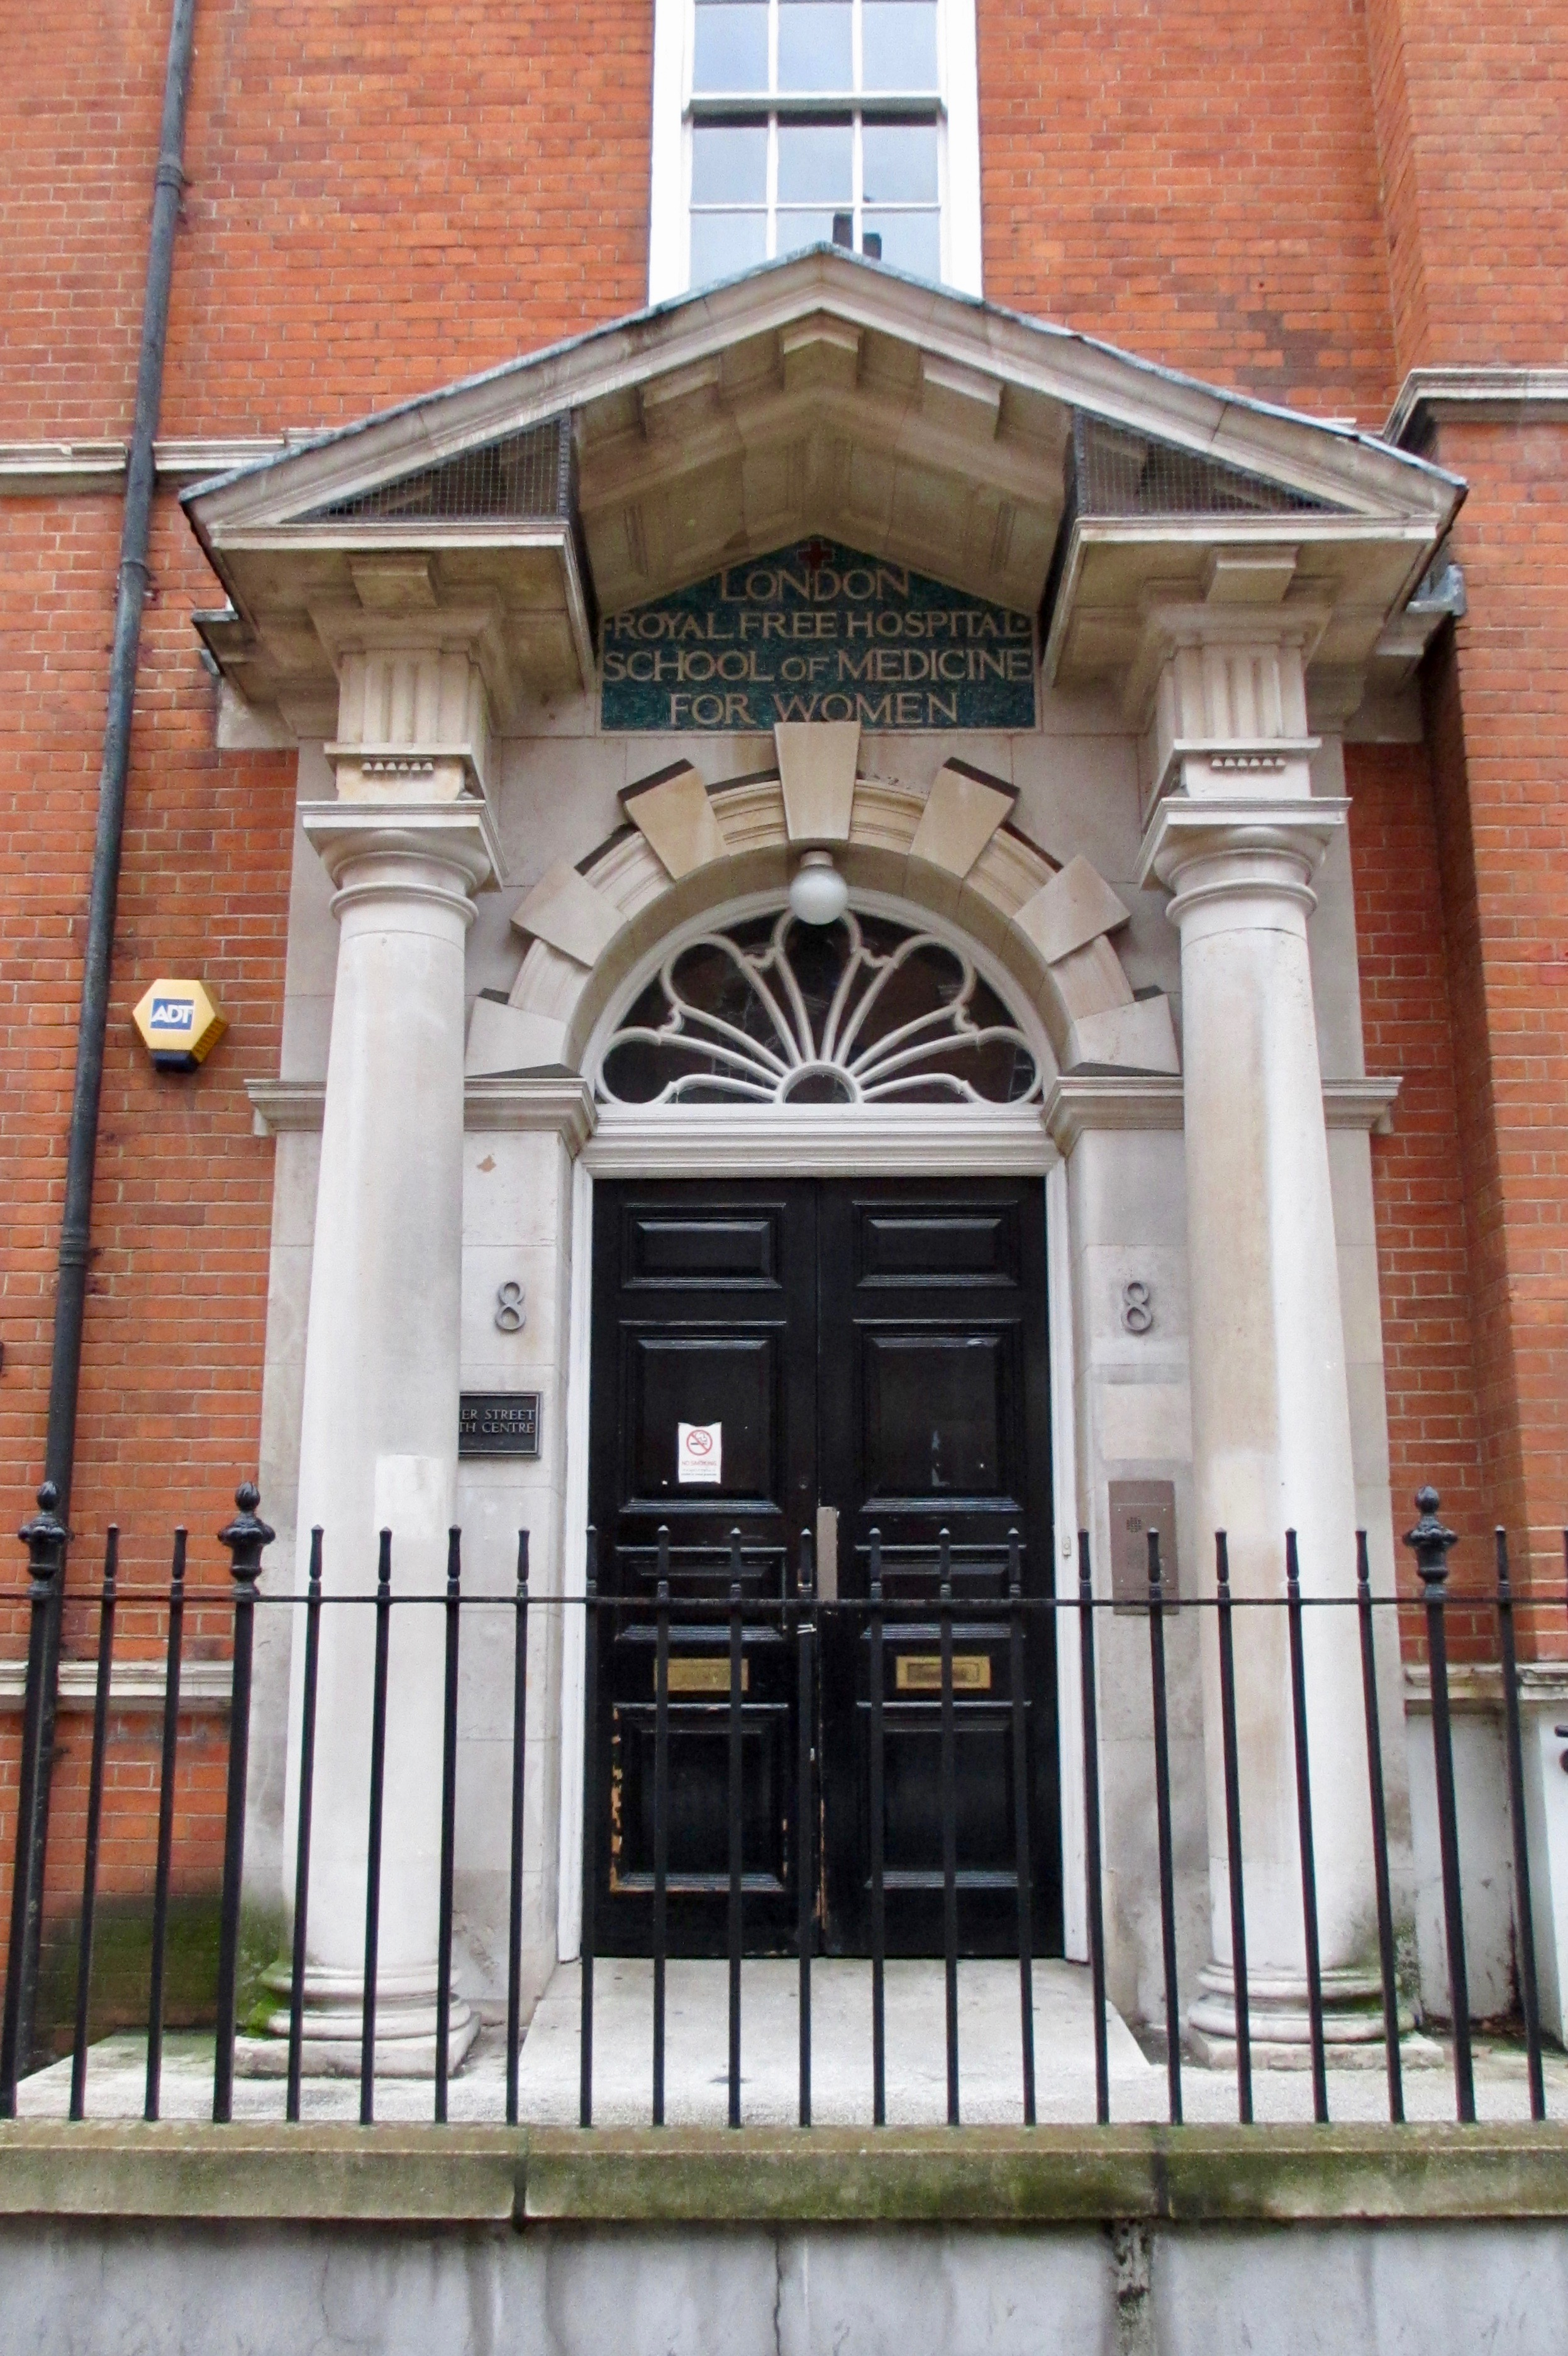 image of London School of Medicine for Women